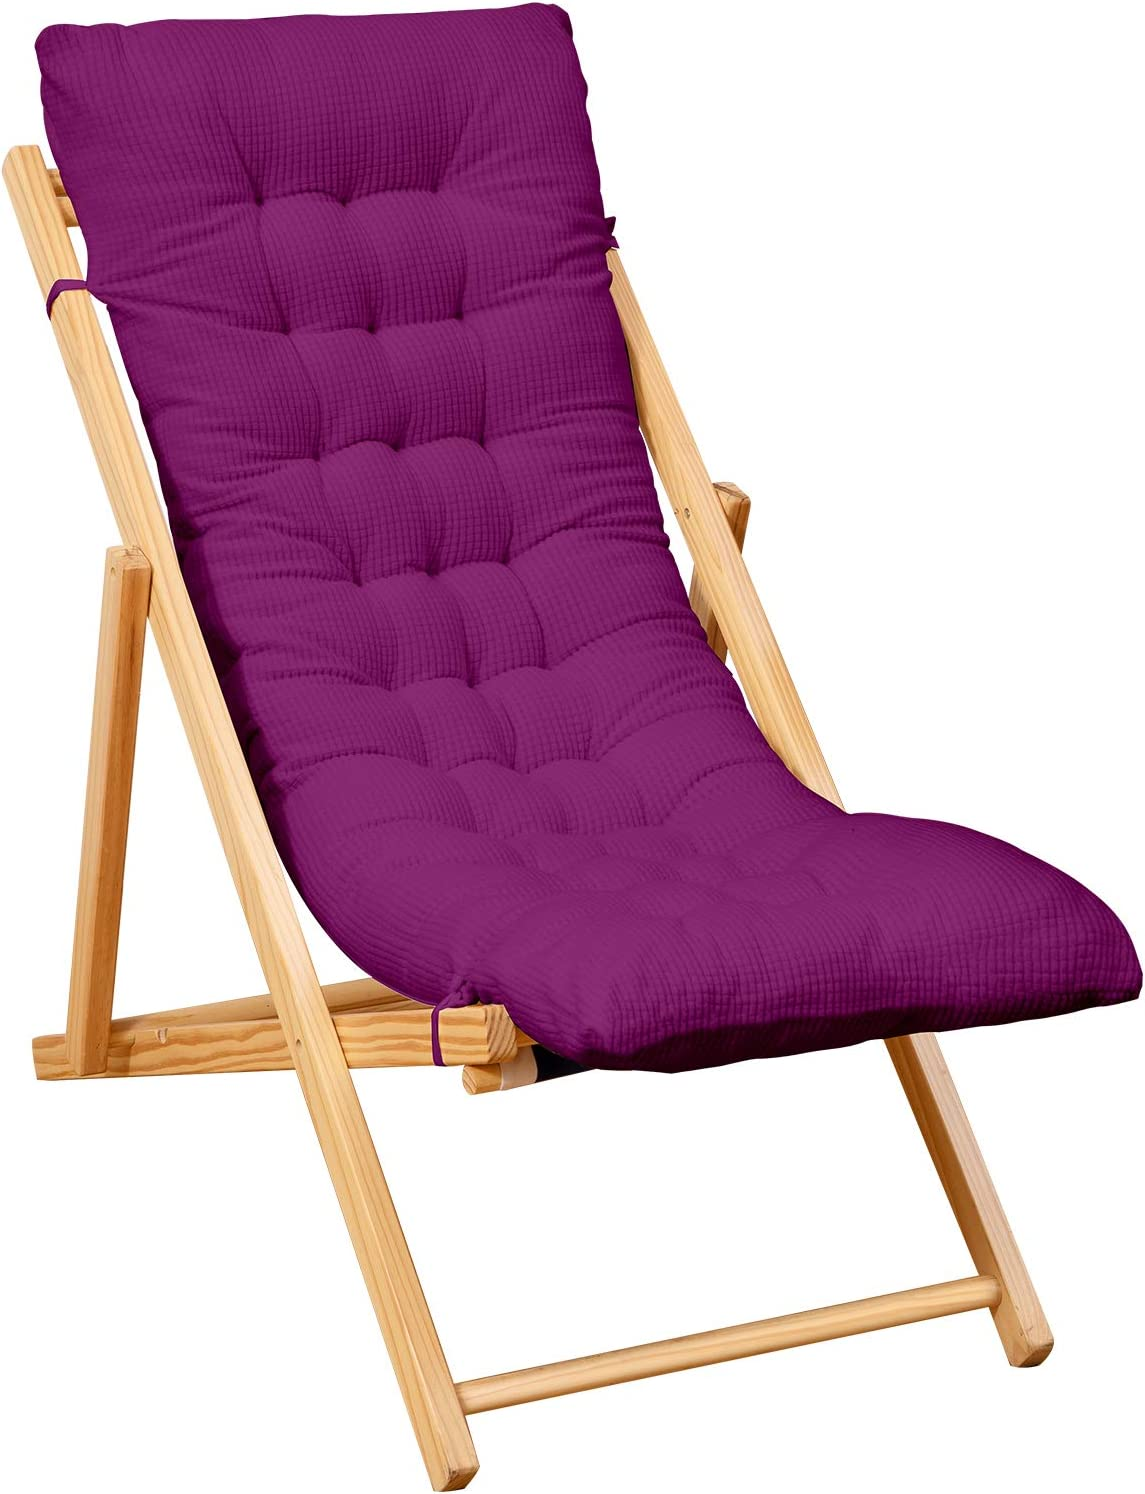 Yimeis Rocking Chair Cushions Pads, Indoor Zero Gravity Swing Long Bench Chaise Recliner Cushions for Lounge Chairs, Outdoor Patio Lawn Lounge Bench Chair Cushions for Outdoor Furniture (Purple)